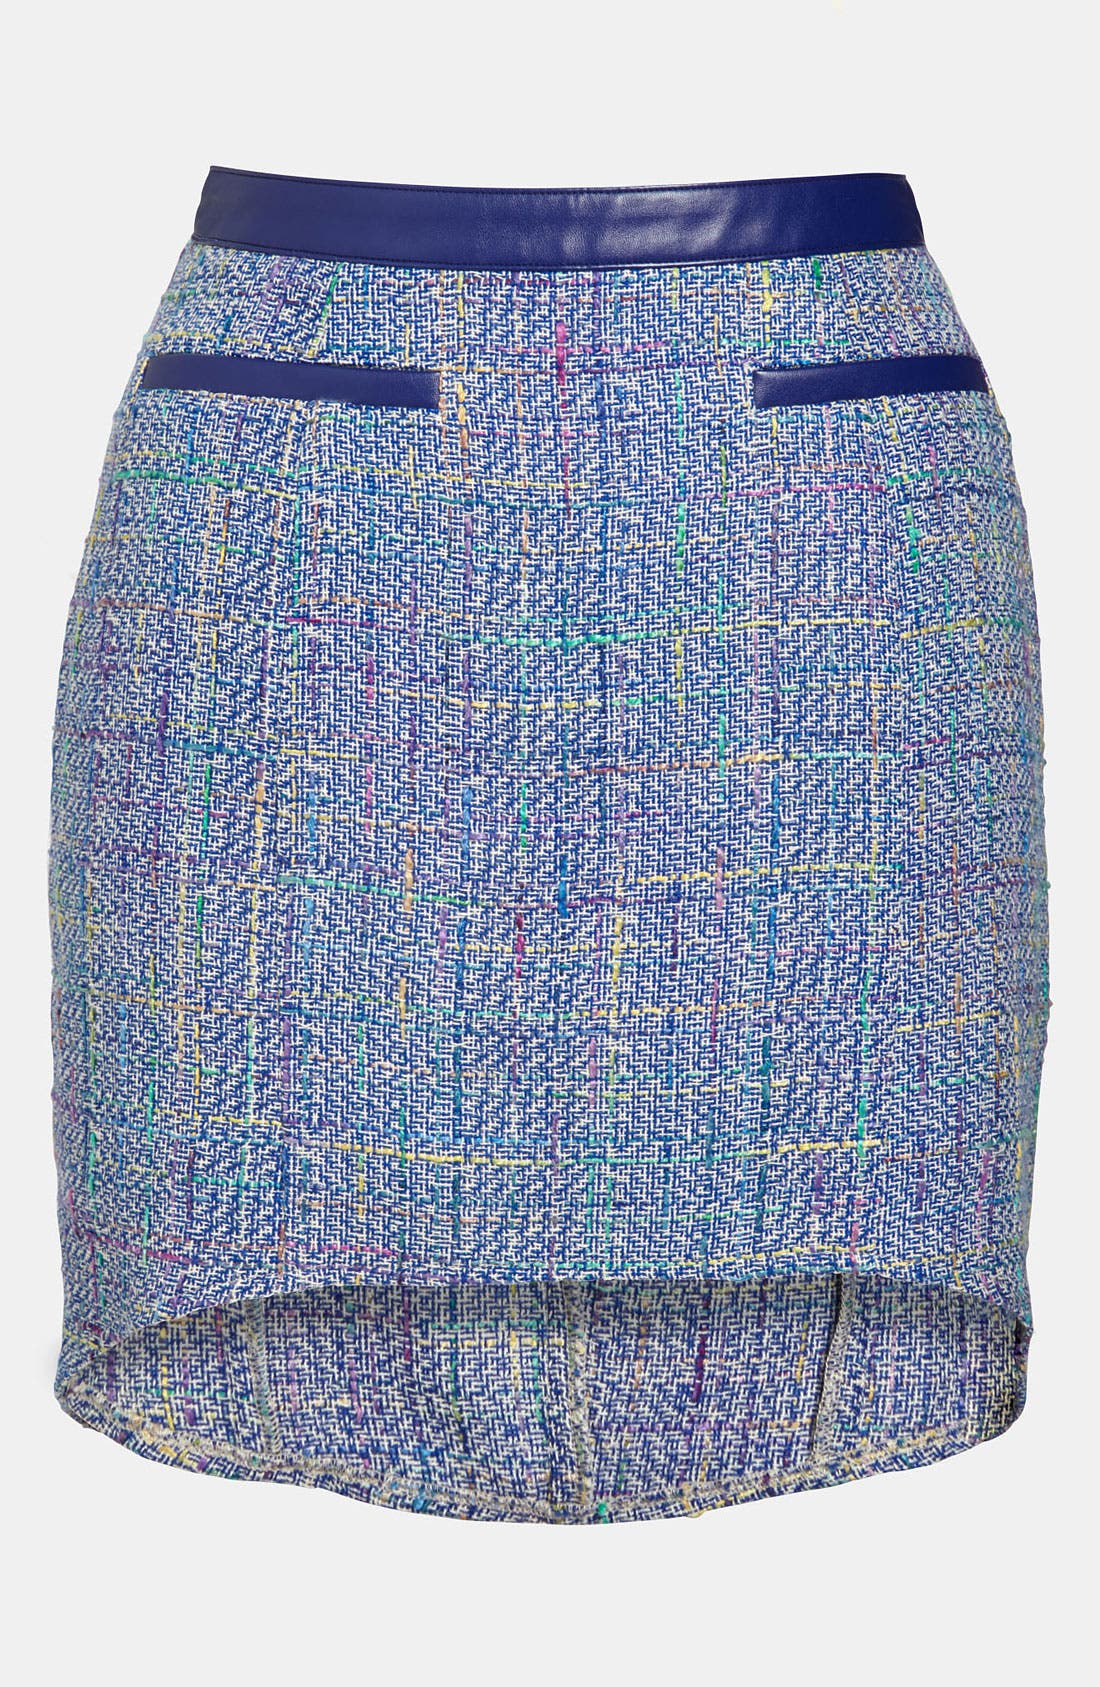 Alternate Image 1 Selected - ASTR High/Low Tweed Skirt